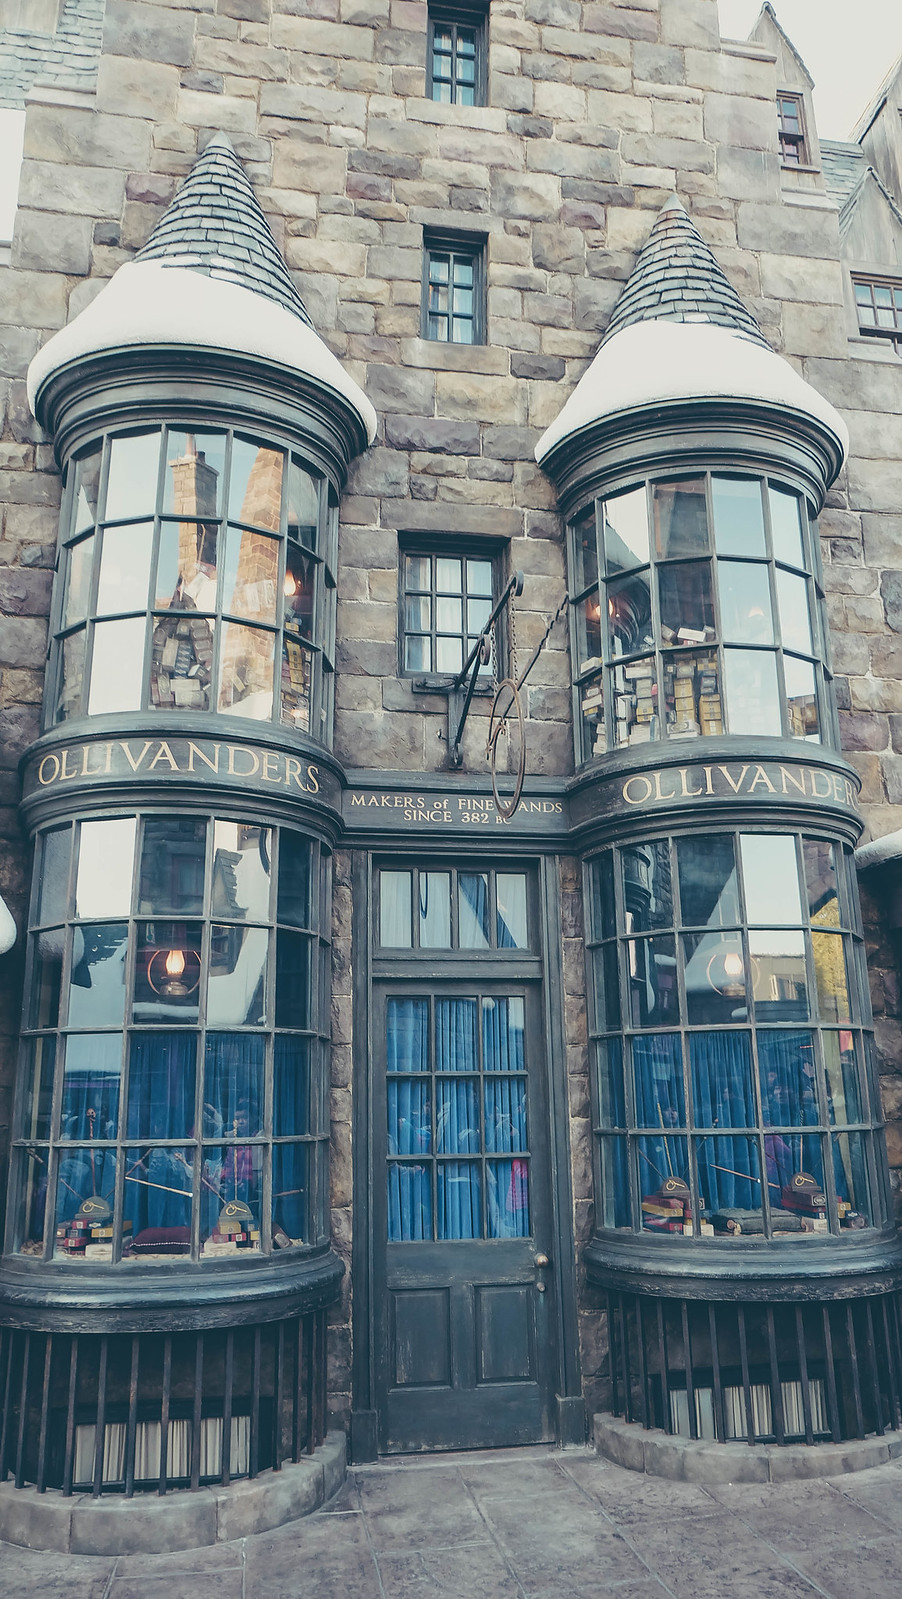 Ollivanders Wand Shop, makers of fine wands since 382 B.C.